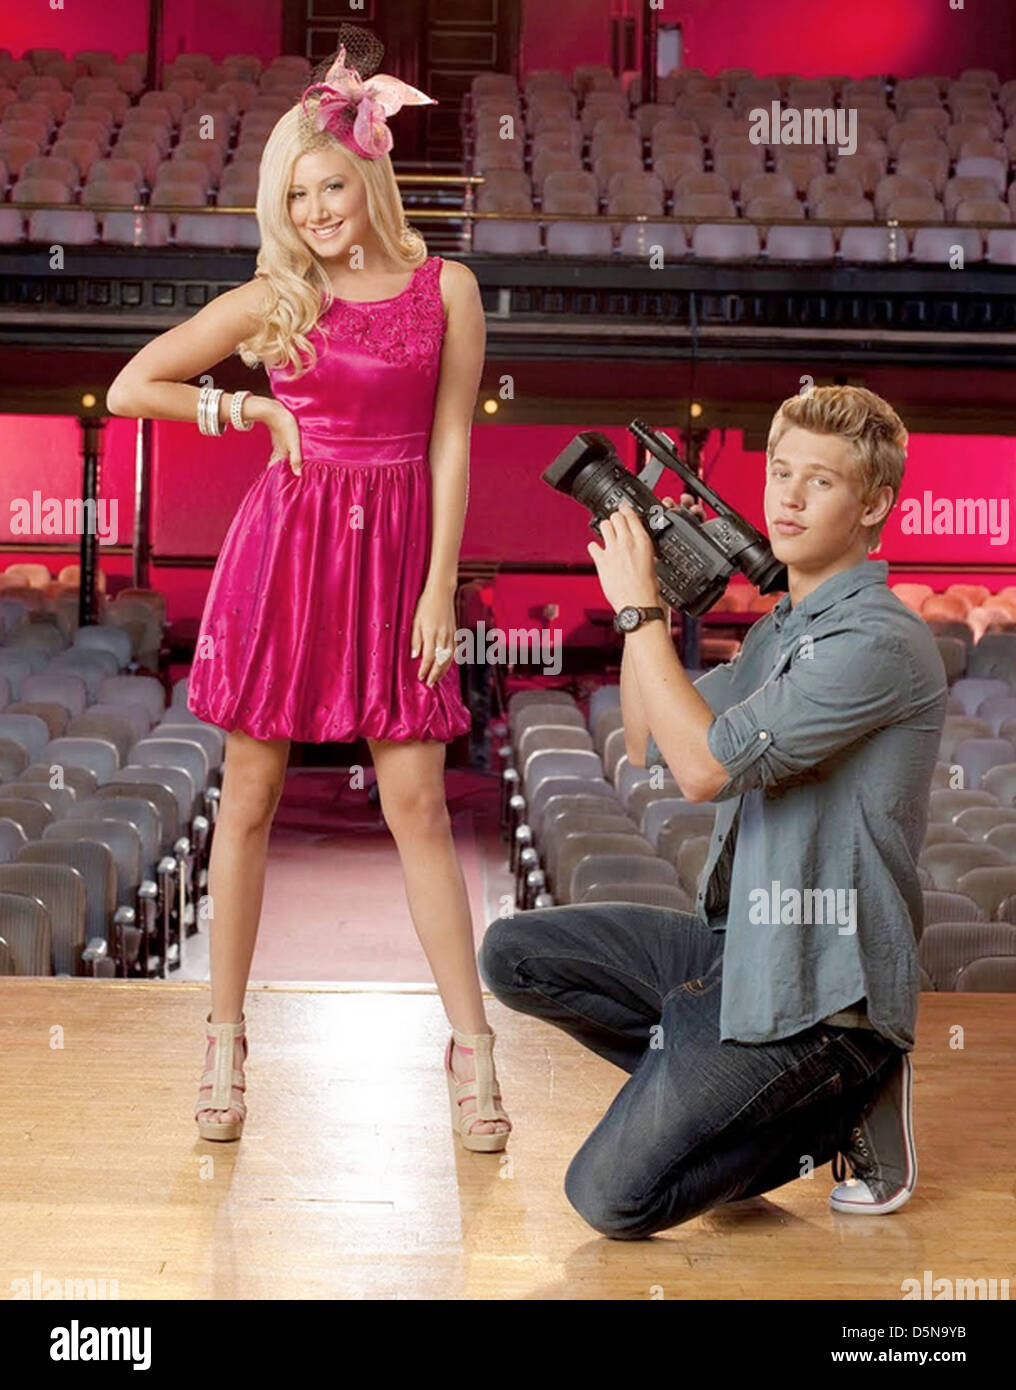 Sharpay S Fabulous Adventure 2011 Disney Channel Film With